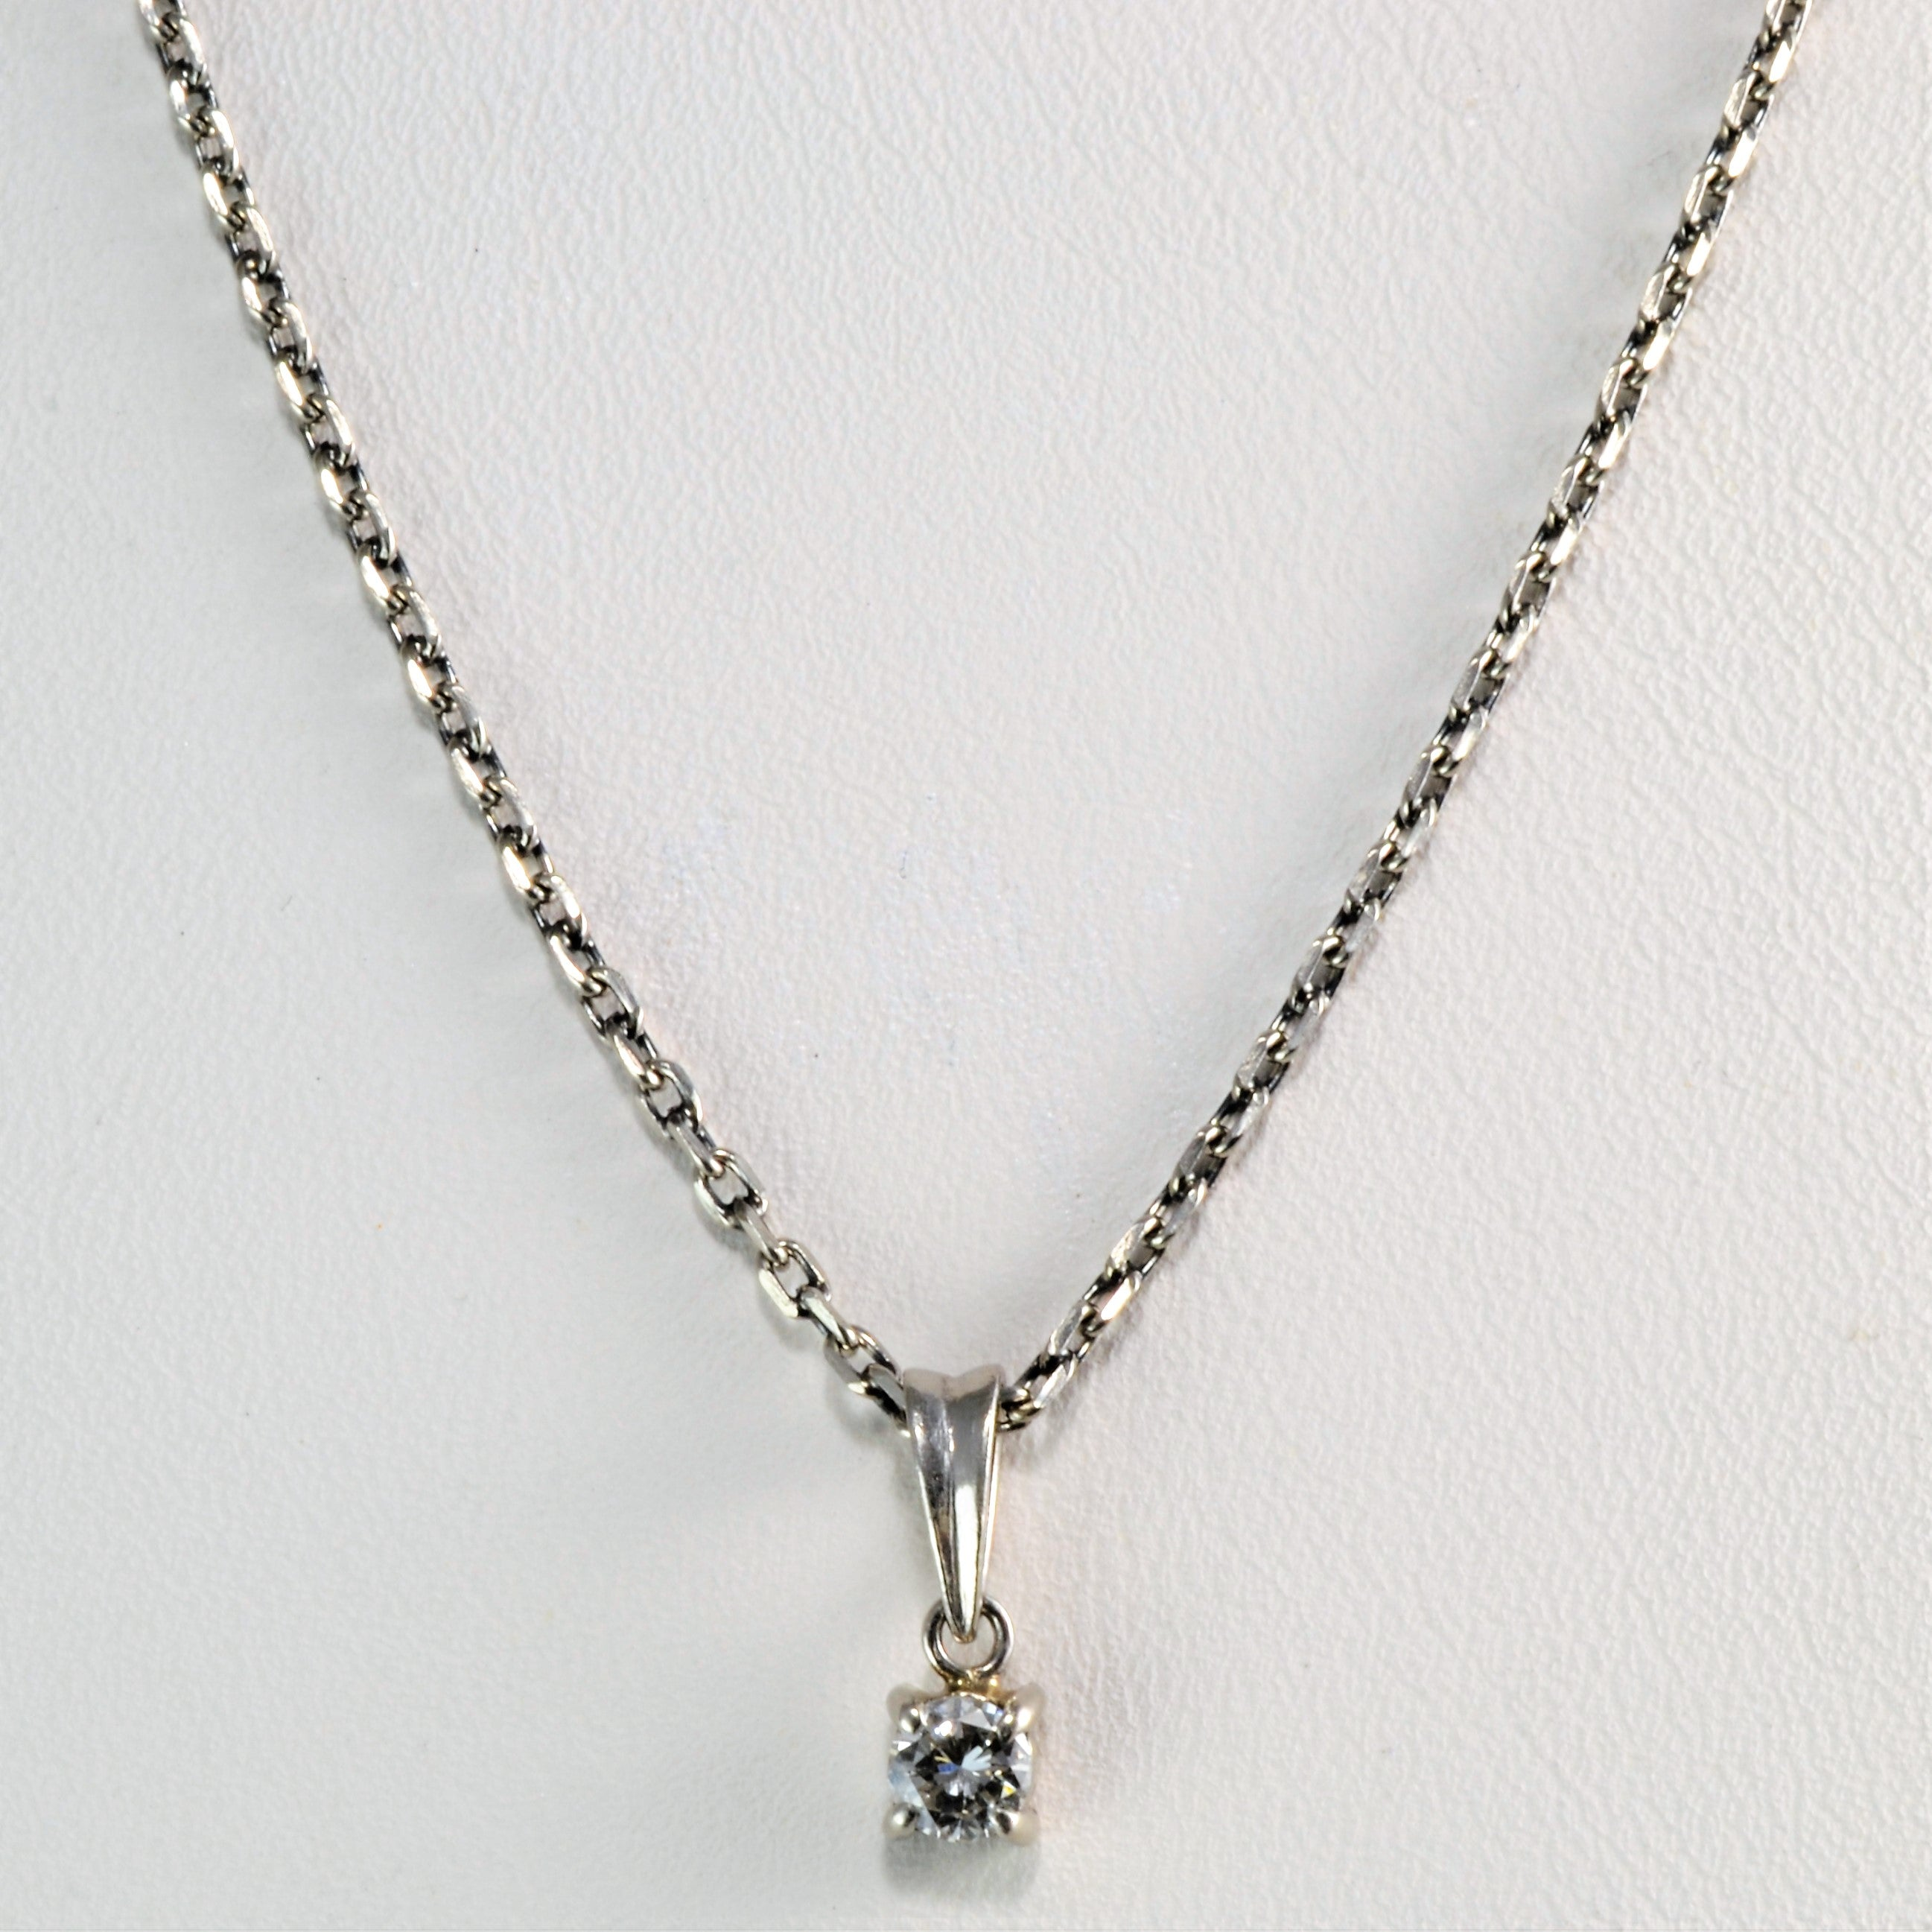 silver necklace link overstock shipping inch jewelry platinum today watches over platifina free product cuban chain